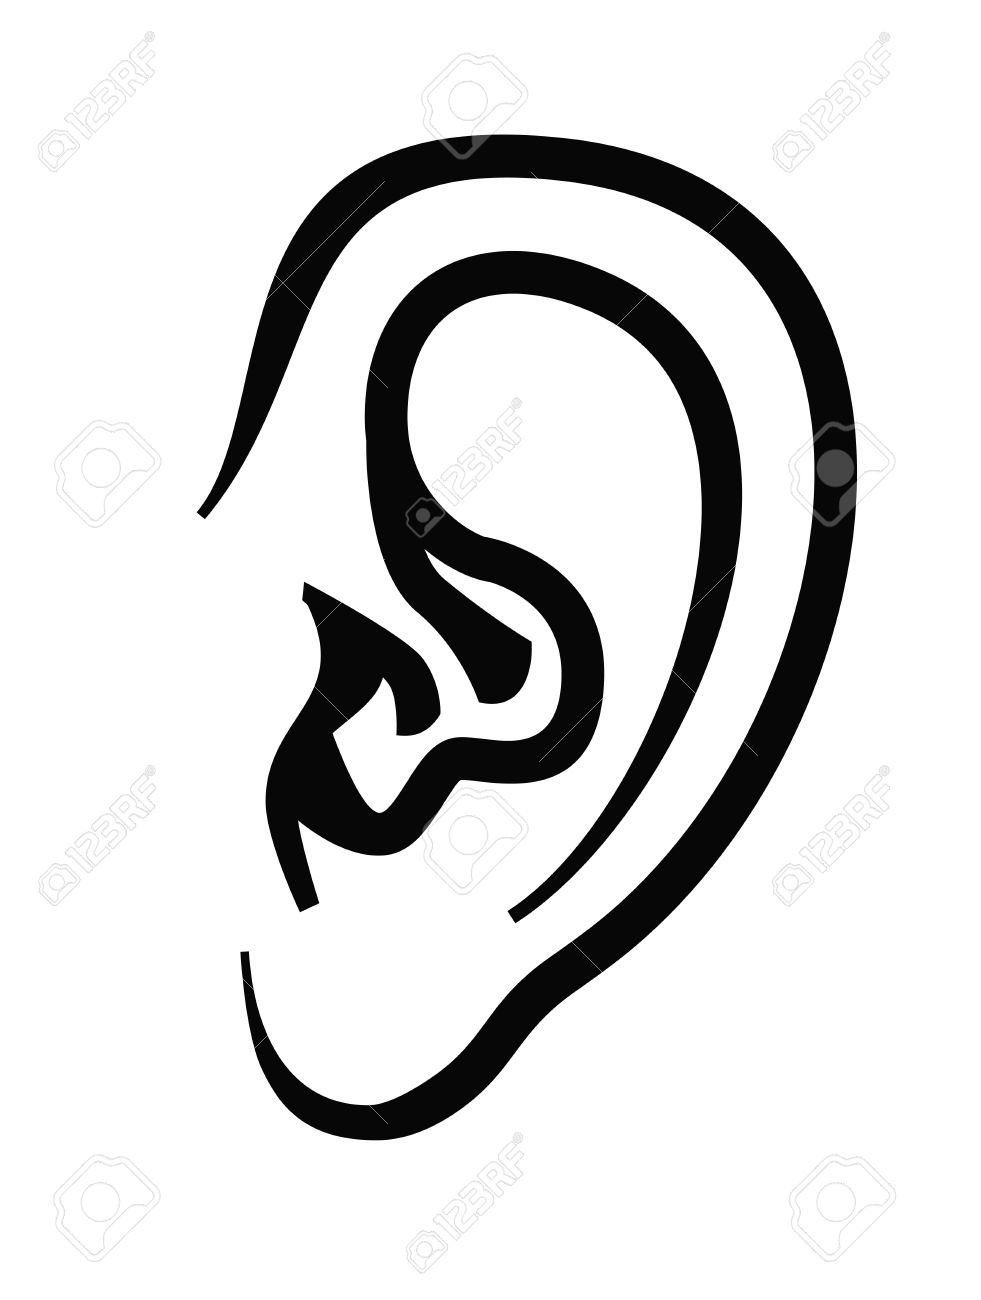 vector black ear icon on white background - 33530483